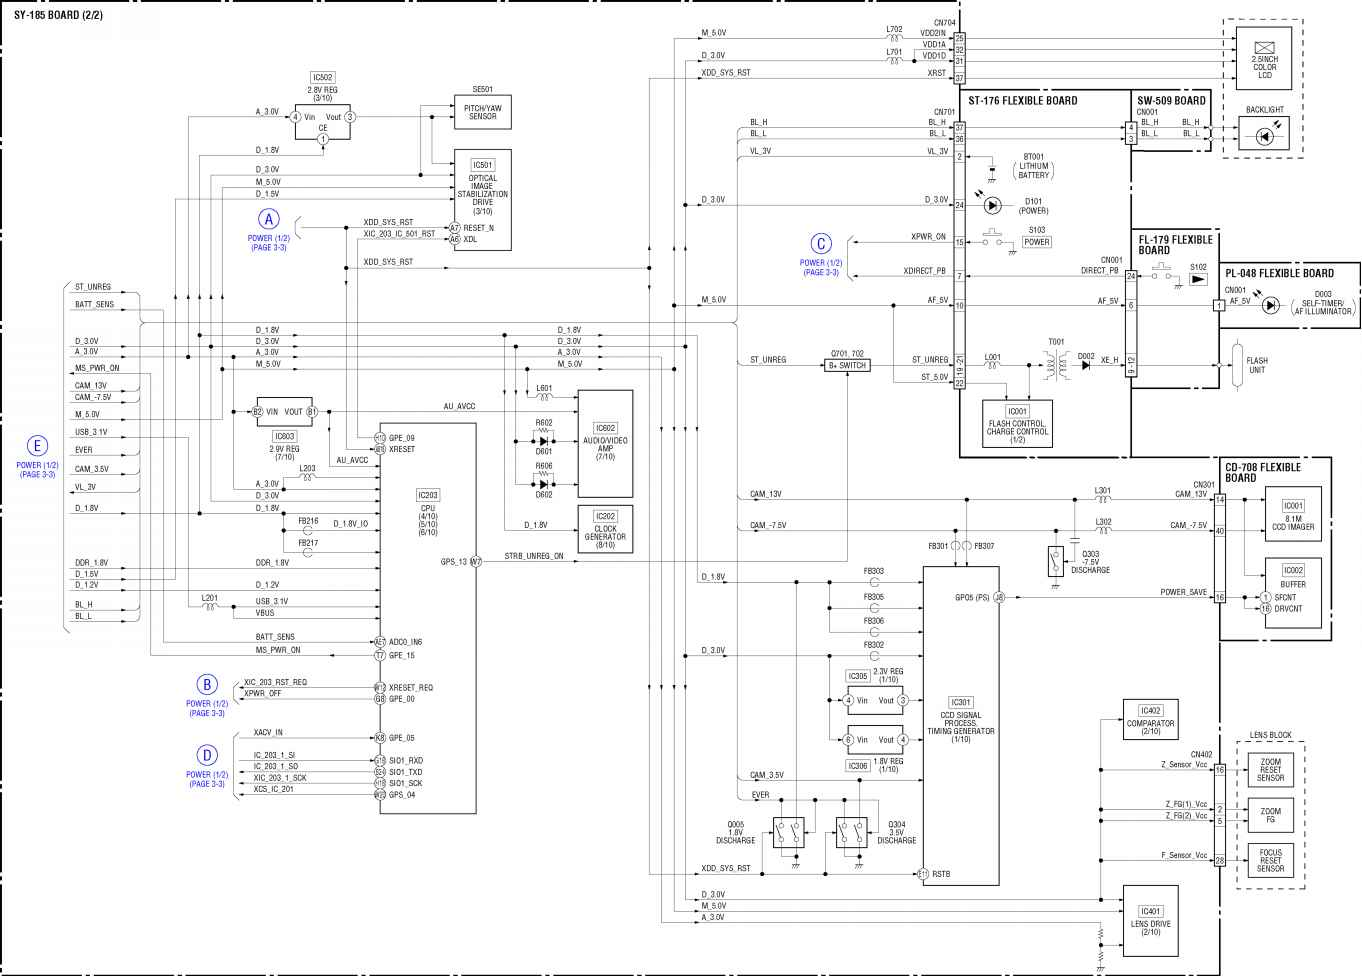 Dsc Gs Boost Wiring Diagram Trusted Diagrams Smoke Alarm 28 Images Me4331 Review Apr 29 2008 System Fire